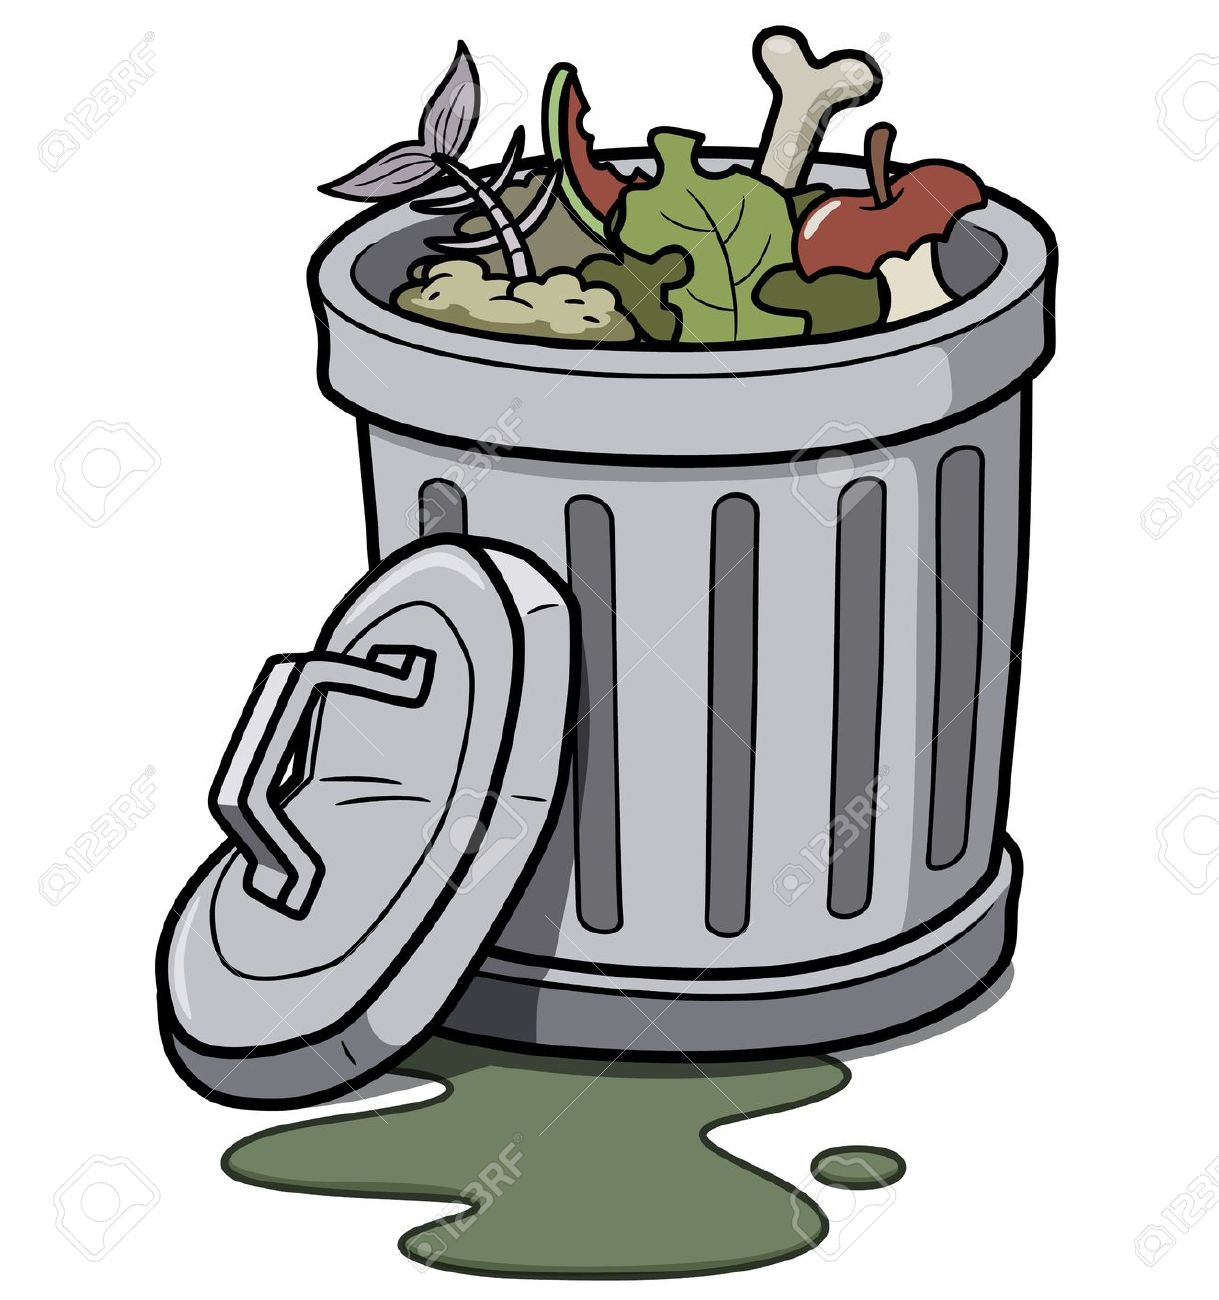 Trash Pile Clipart Pile Of Trash Clipart-Trash Pile Clipart Pile Of Trash Clipart Clipart-4